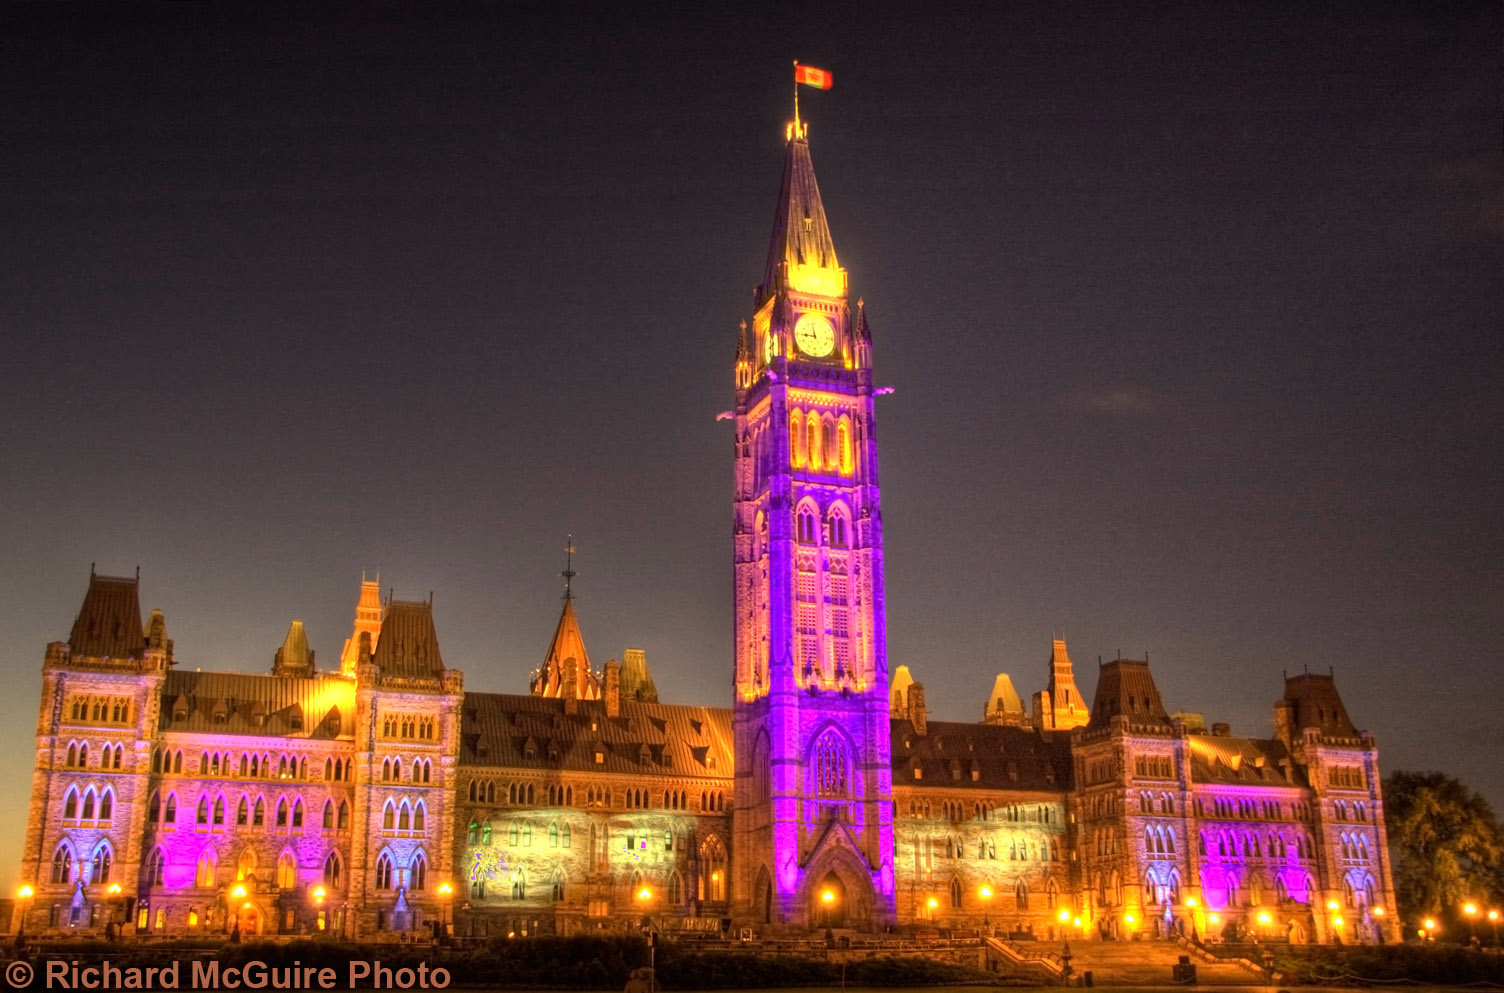 Sound and light - Parliament Buildings, Ottawa, Canada